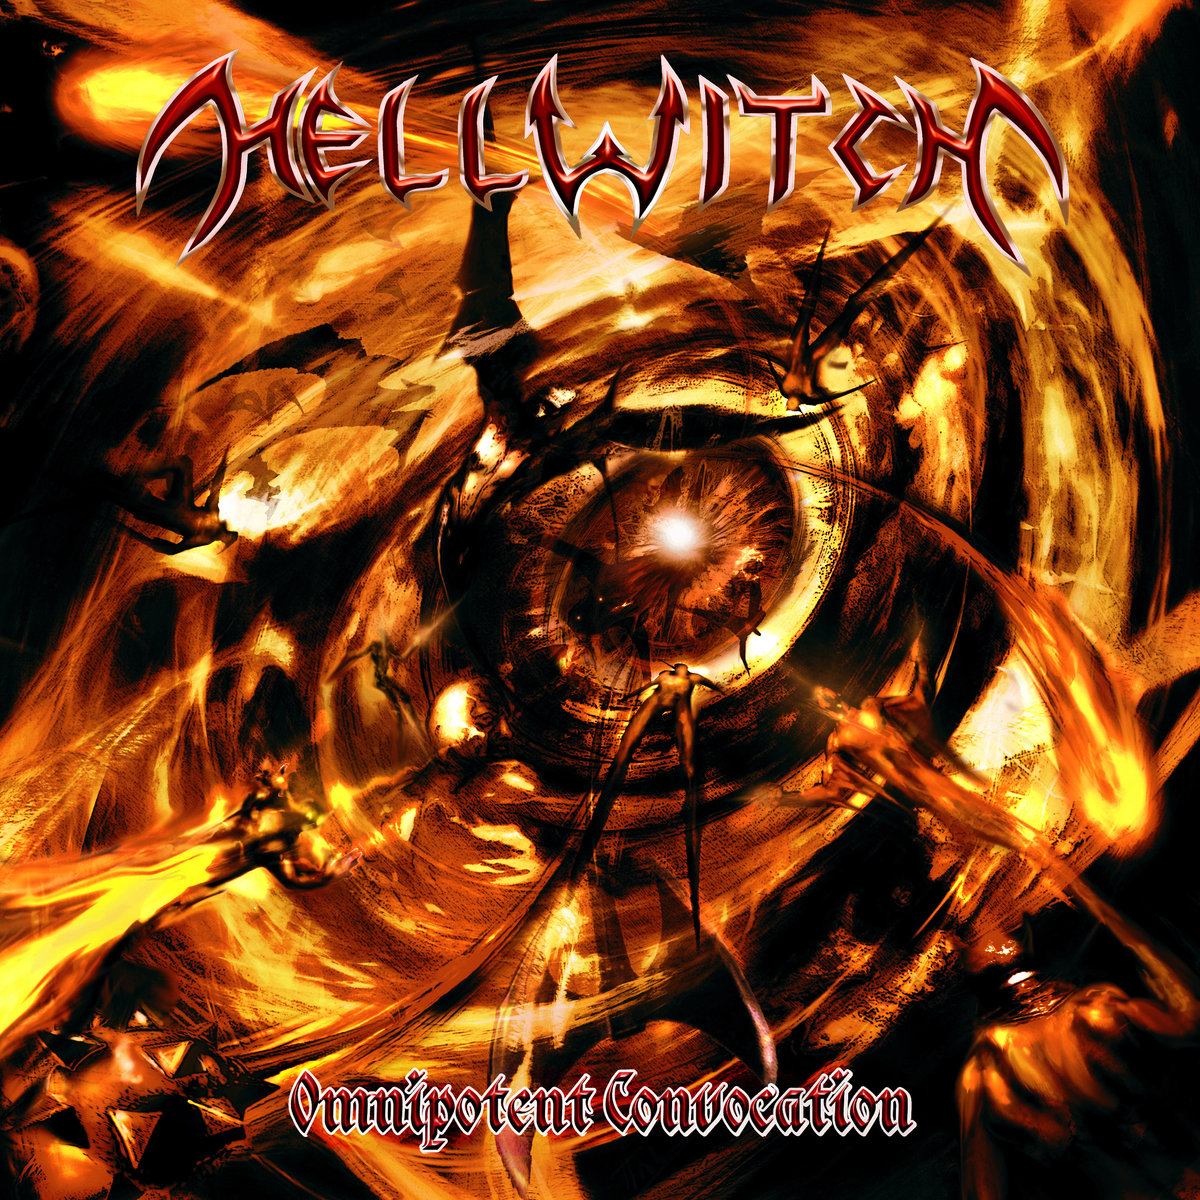 Hellwitch - Omnipotent Convocation - 2009